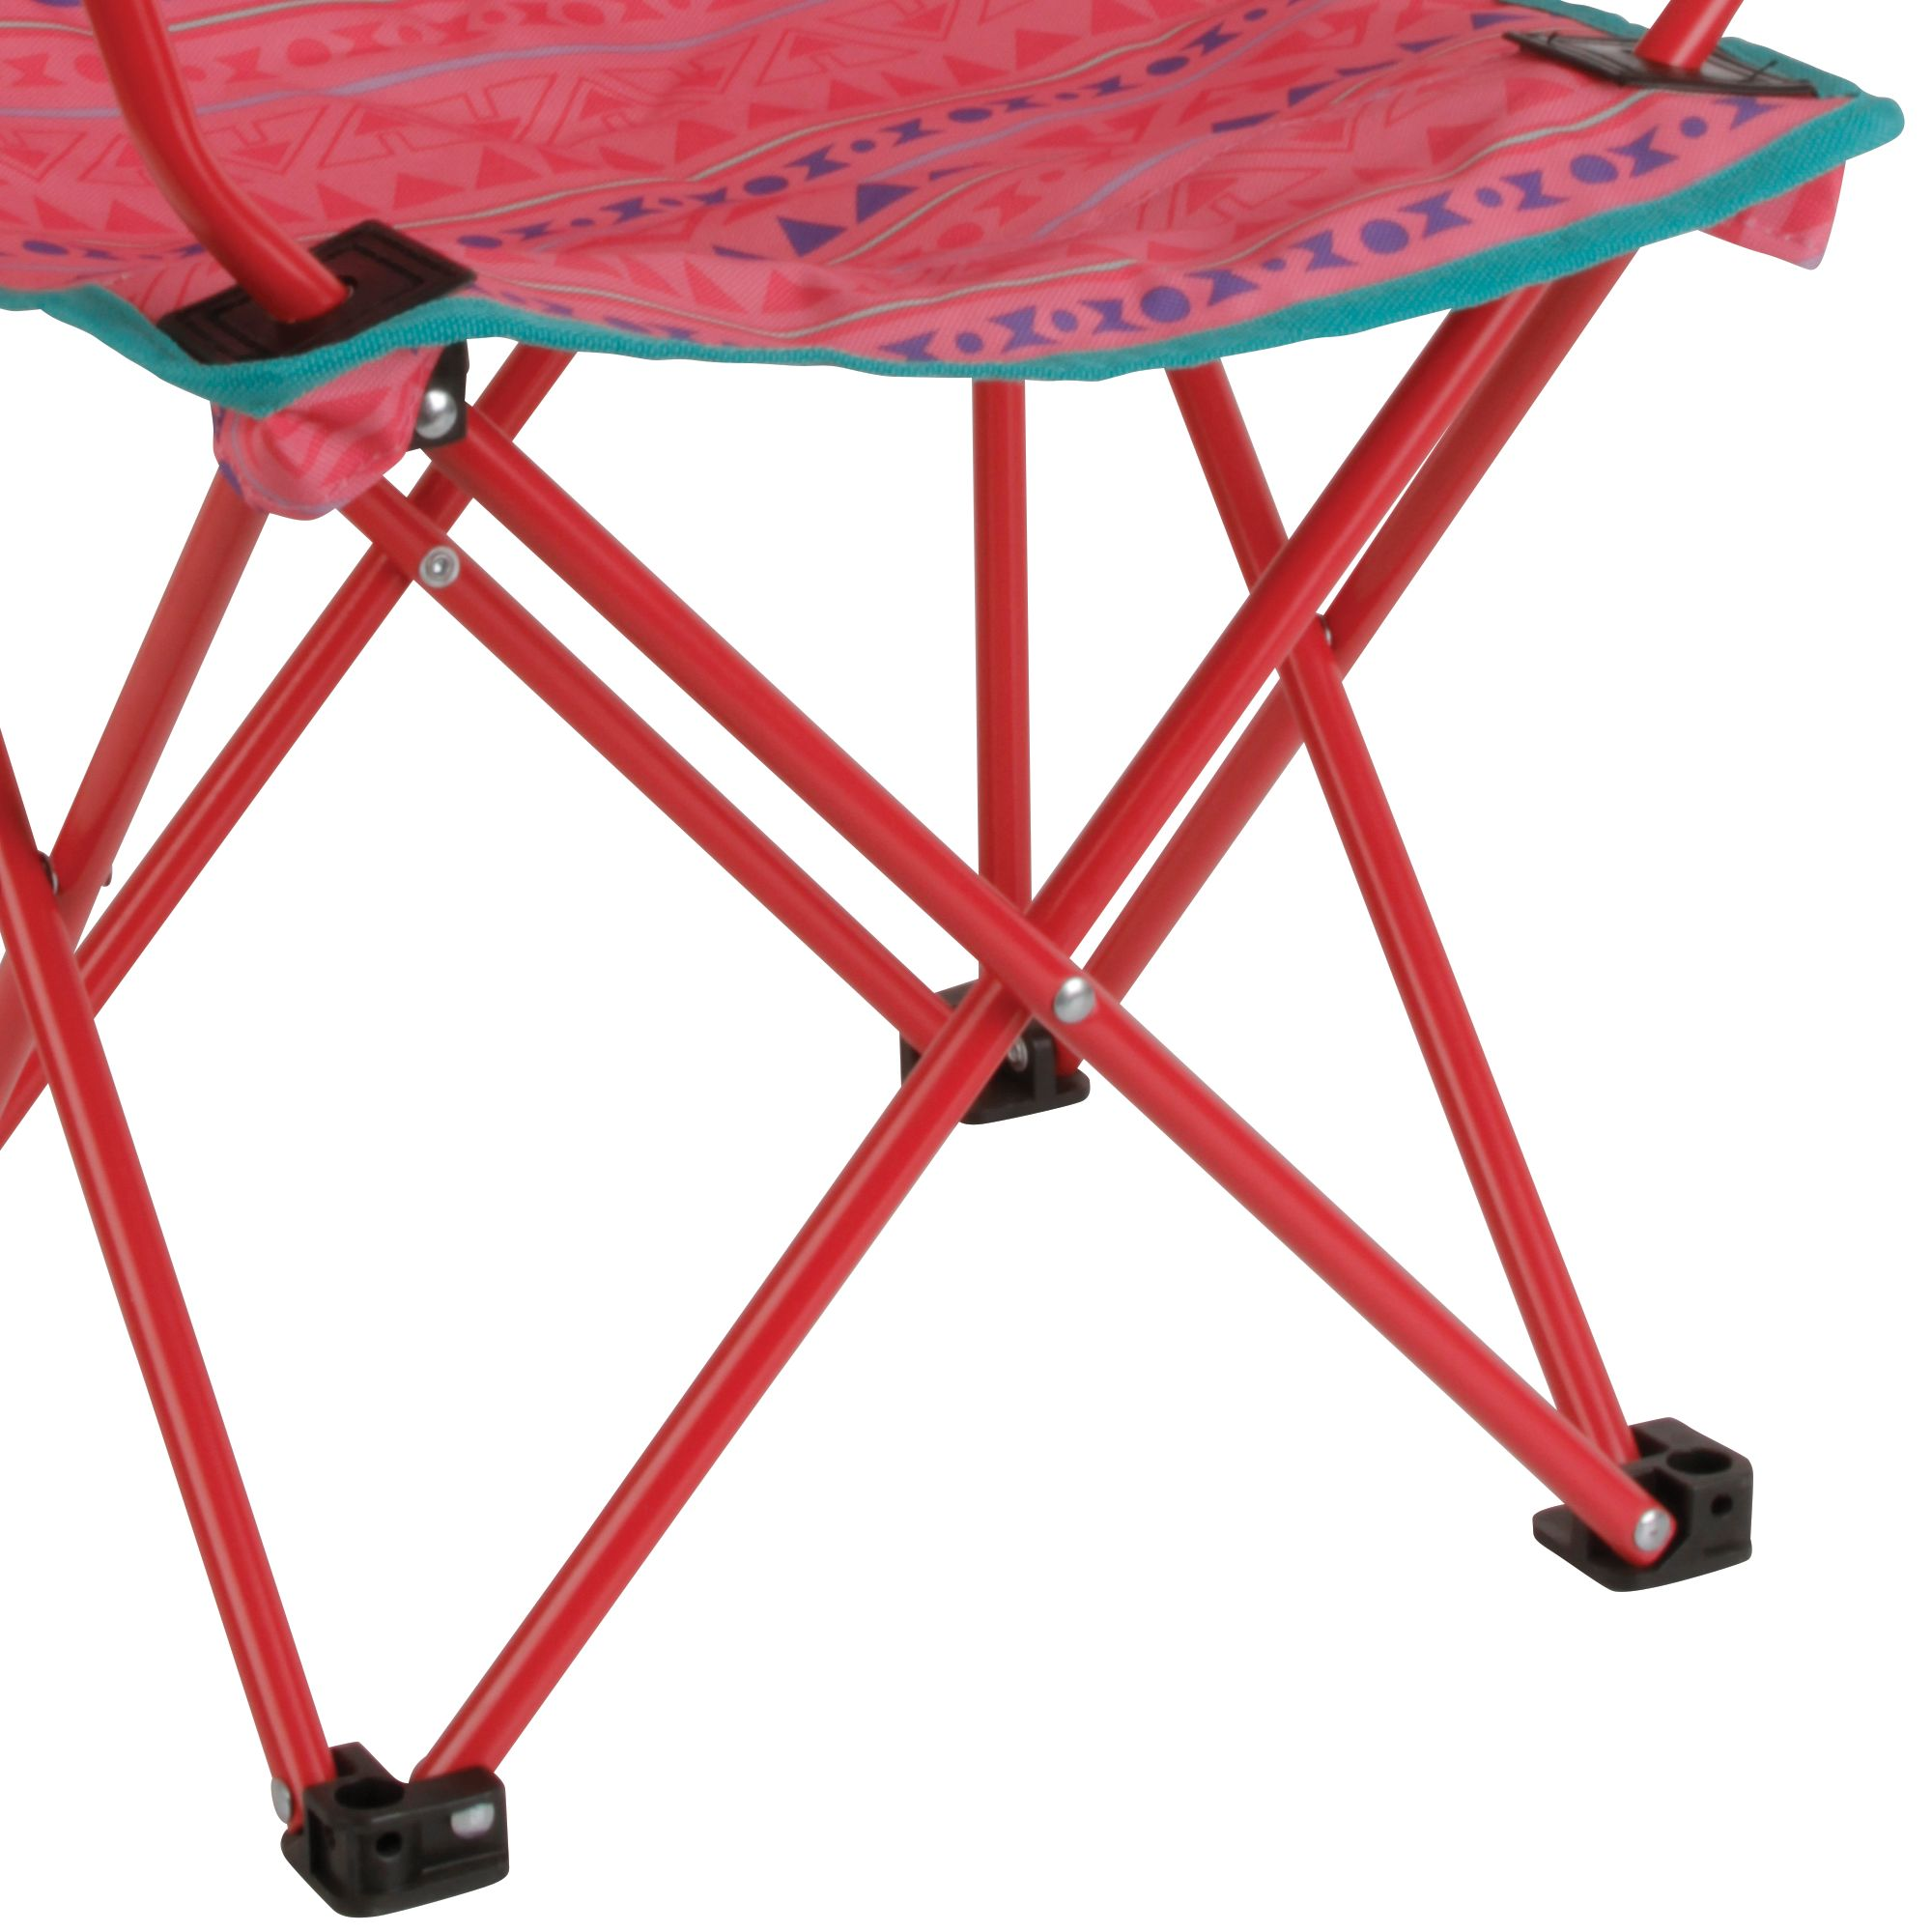 Coleman Kids Camping Glow in the Dark Quad Chair Tribal Pink